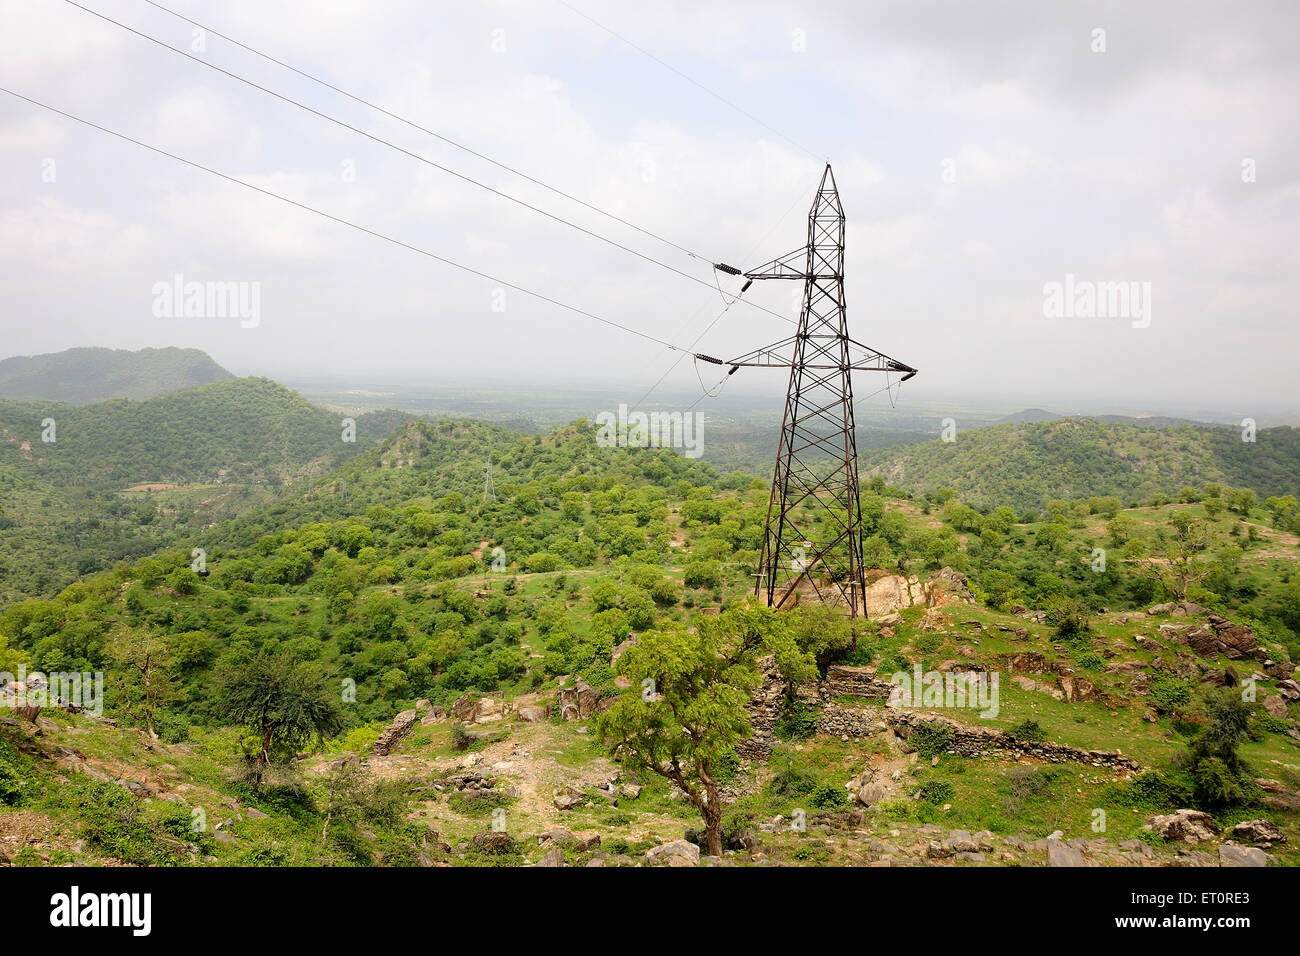 Electricity poll on hilly area ; India - Stock Image